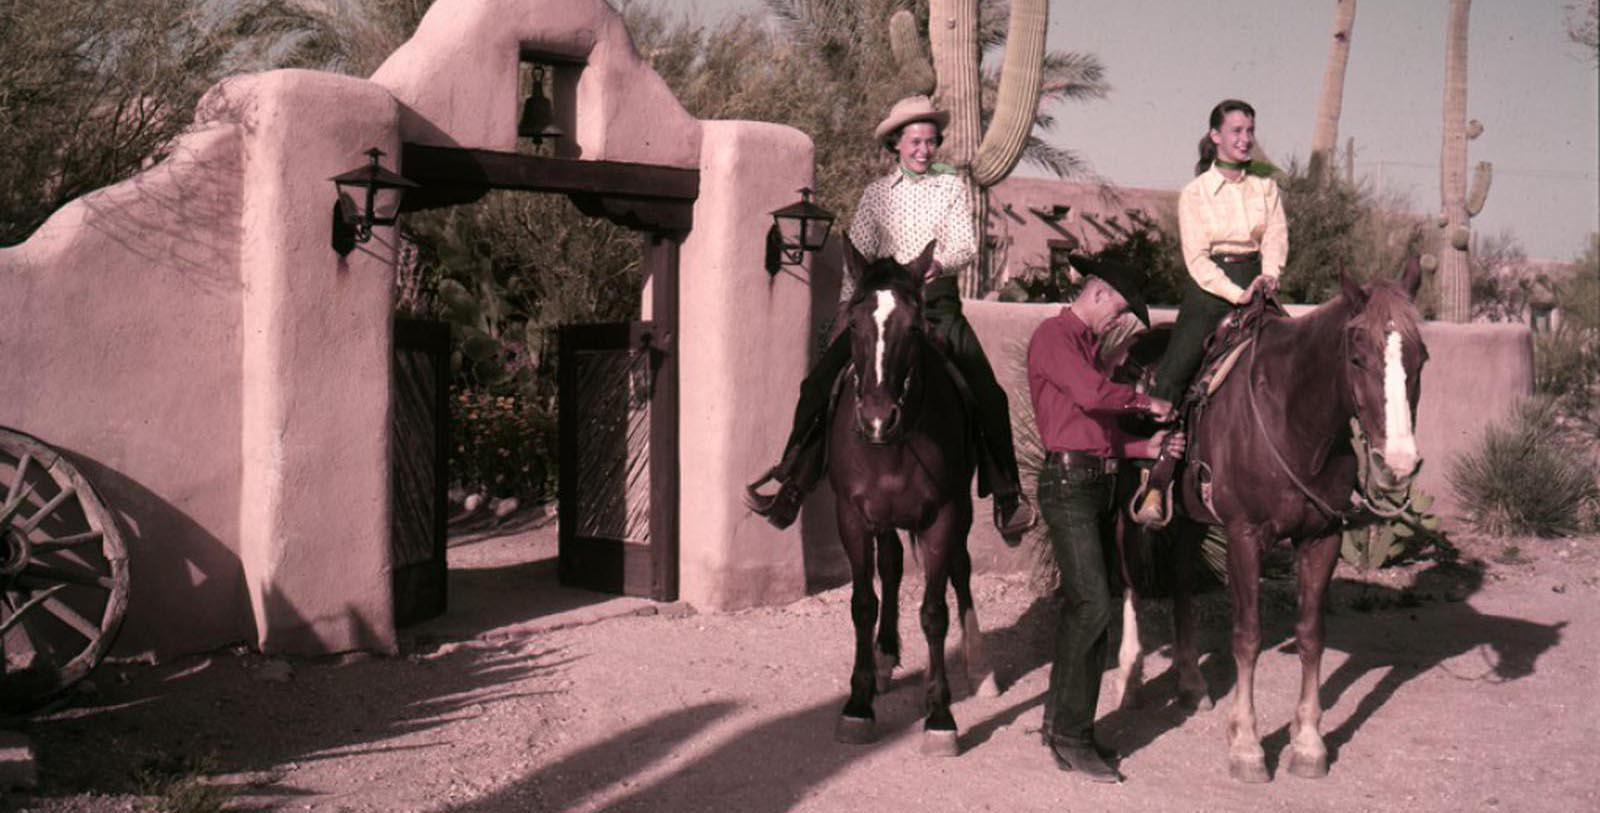 Historic image of people on horseback Hacienda Del Sol Guest Ranch Resort, 1929, Member of Historic Hotels of America, in Tuscan, Arizona, Discover